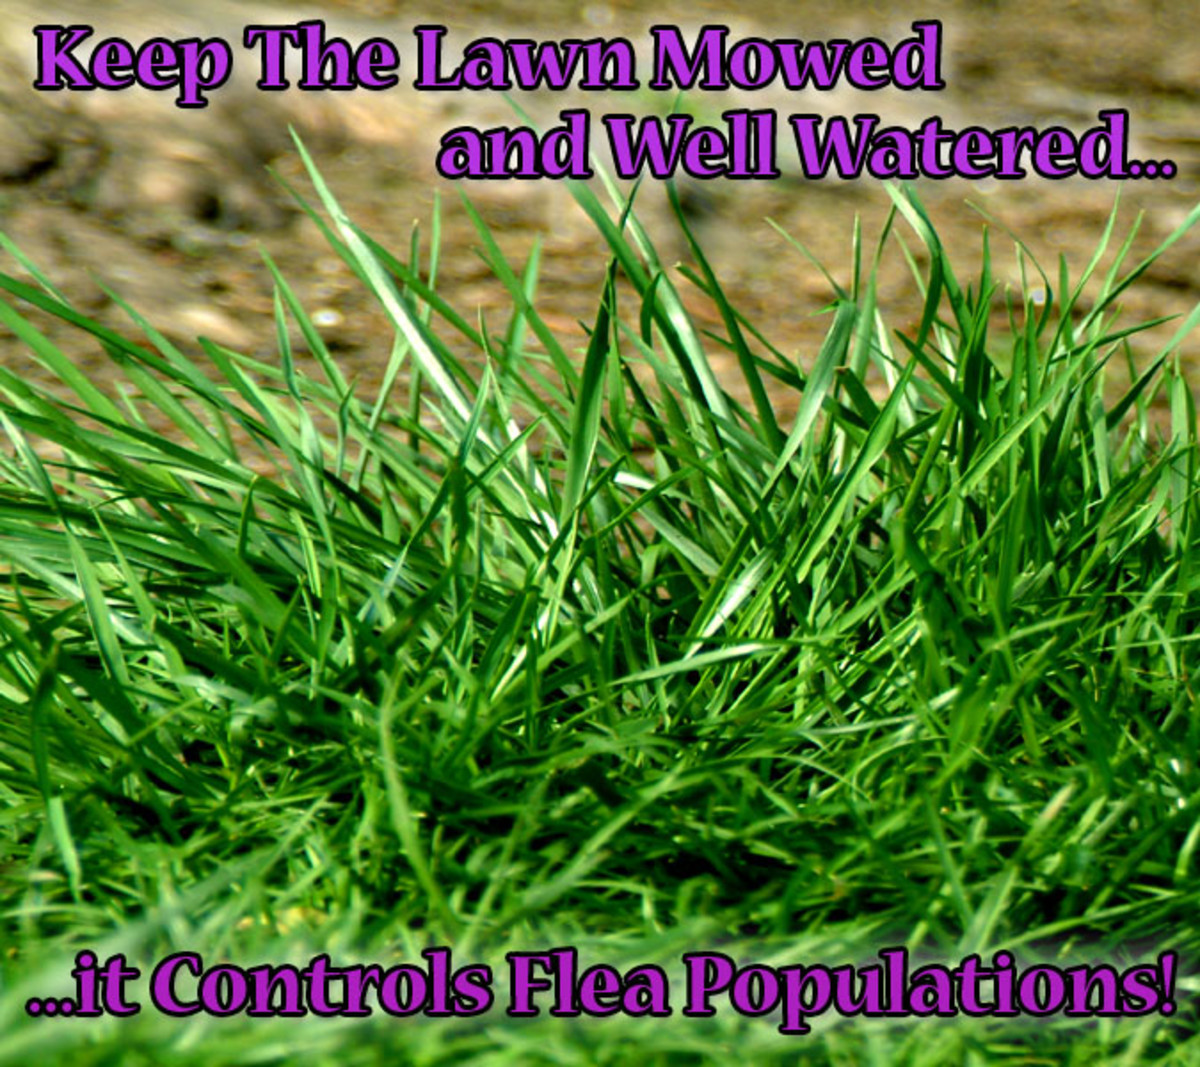 A tailored short lawn lets the rays from the sun heat and kill flea larvae laid in the grass!